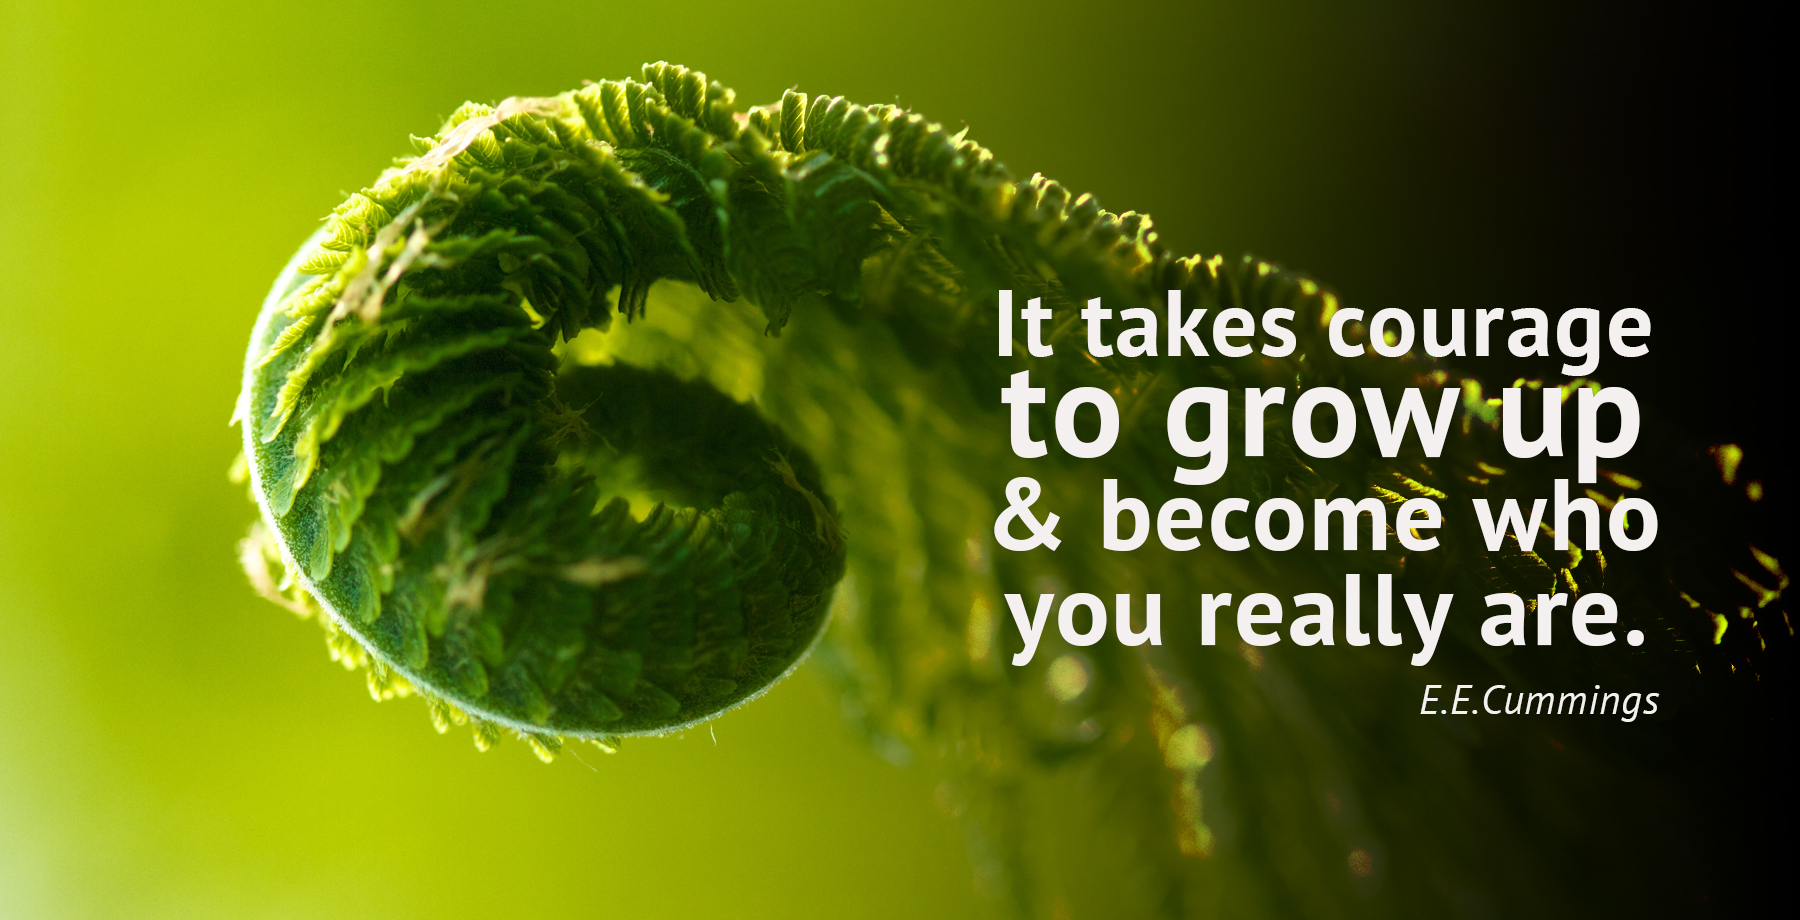 daily inspirational quote image: a fern sprout slowly unrolling